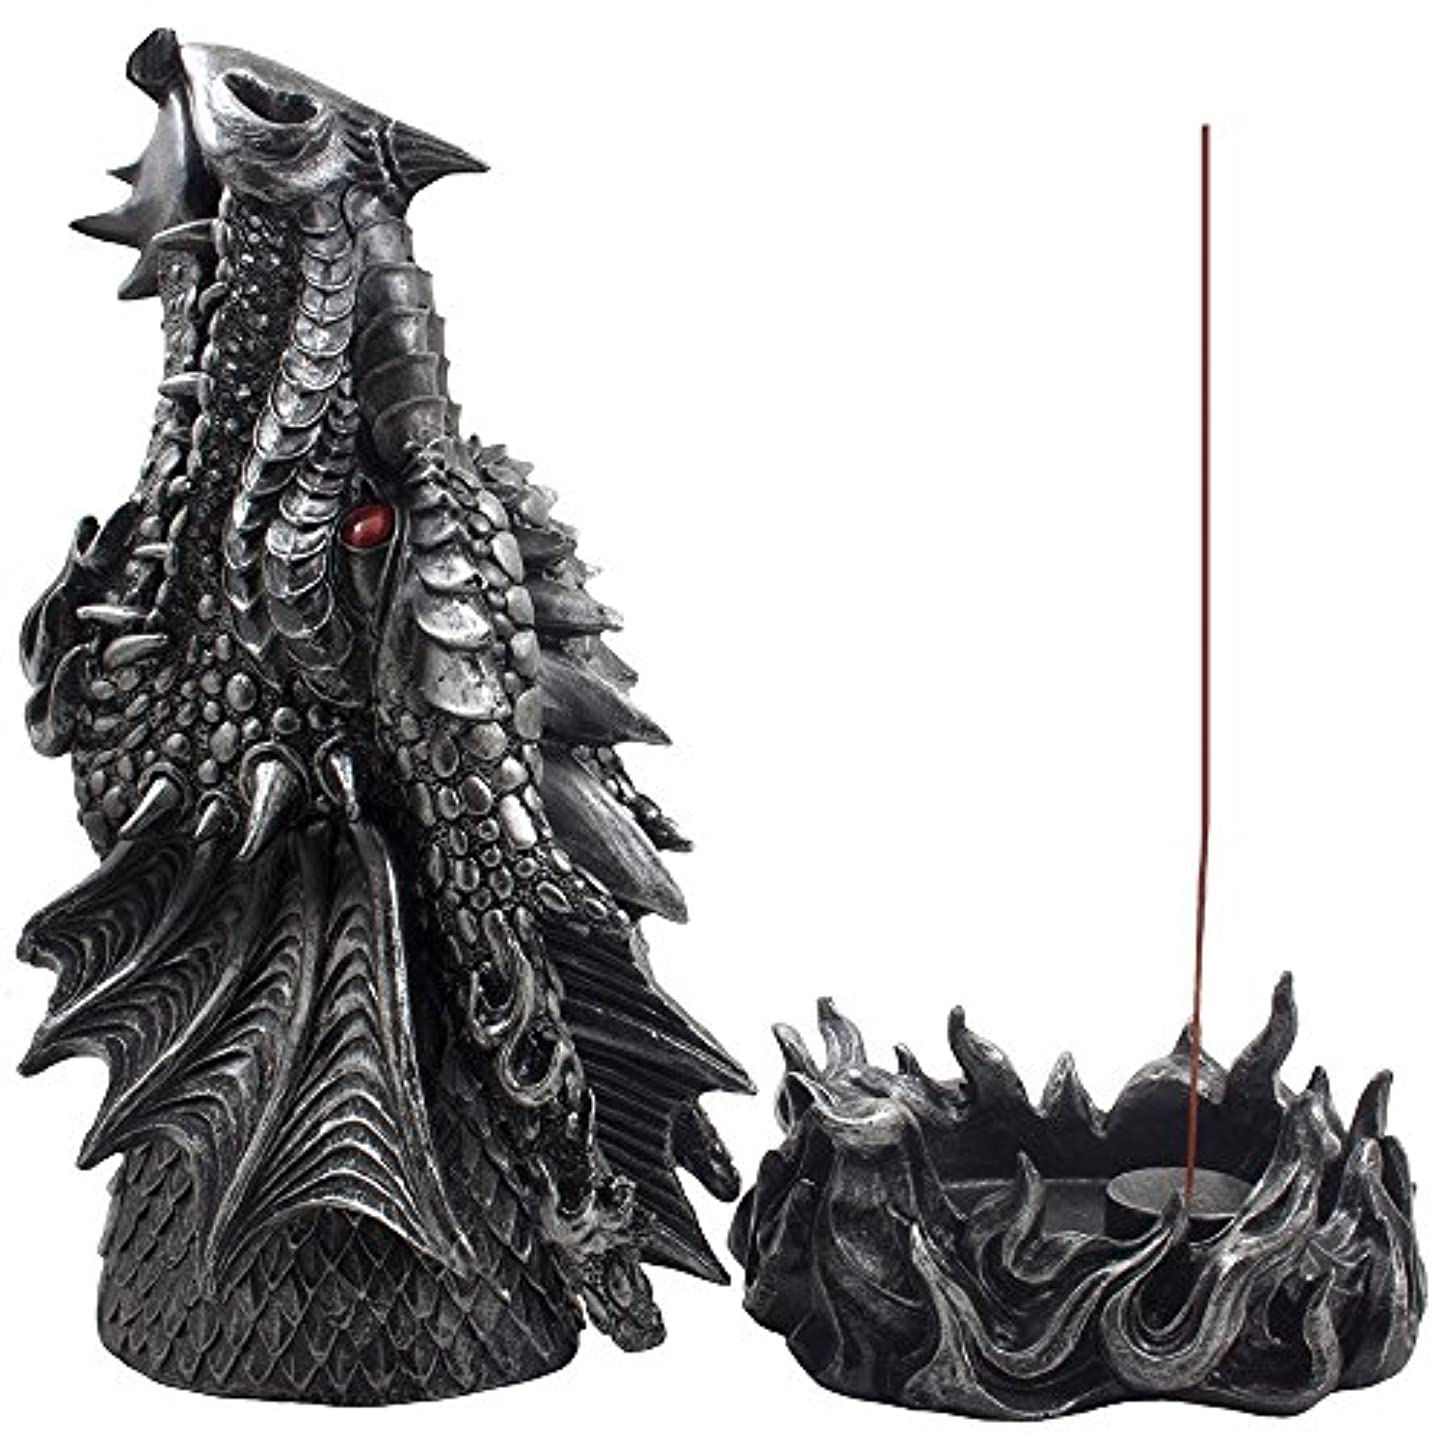 実装するおなじみのハンサムMythical Fire Breathing Dragon Incense Holder & Burner Combo Statue for Sticks or Cones with Decorative Display...